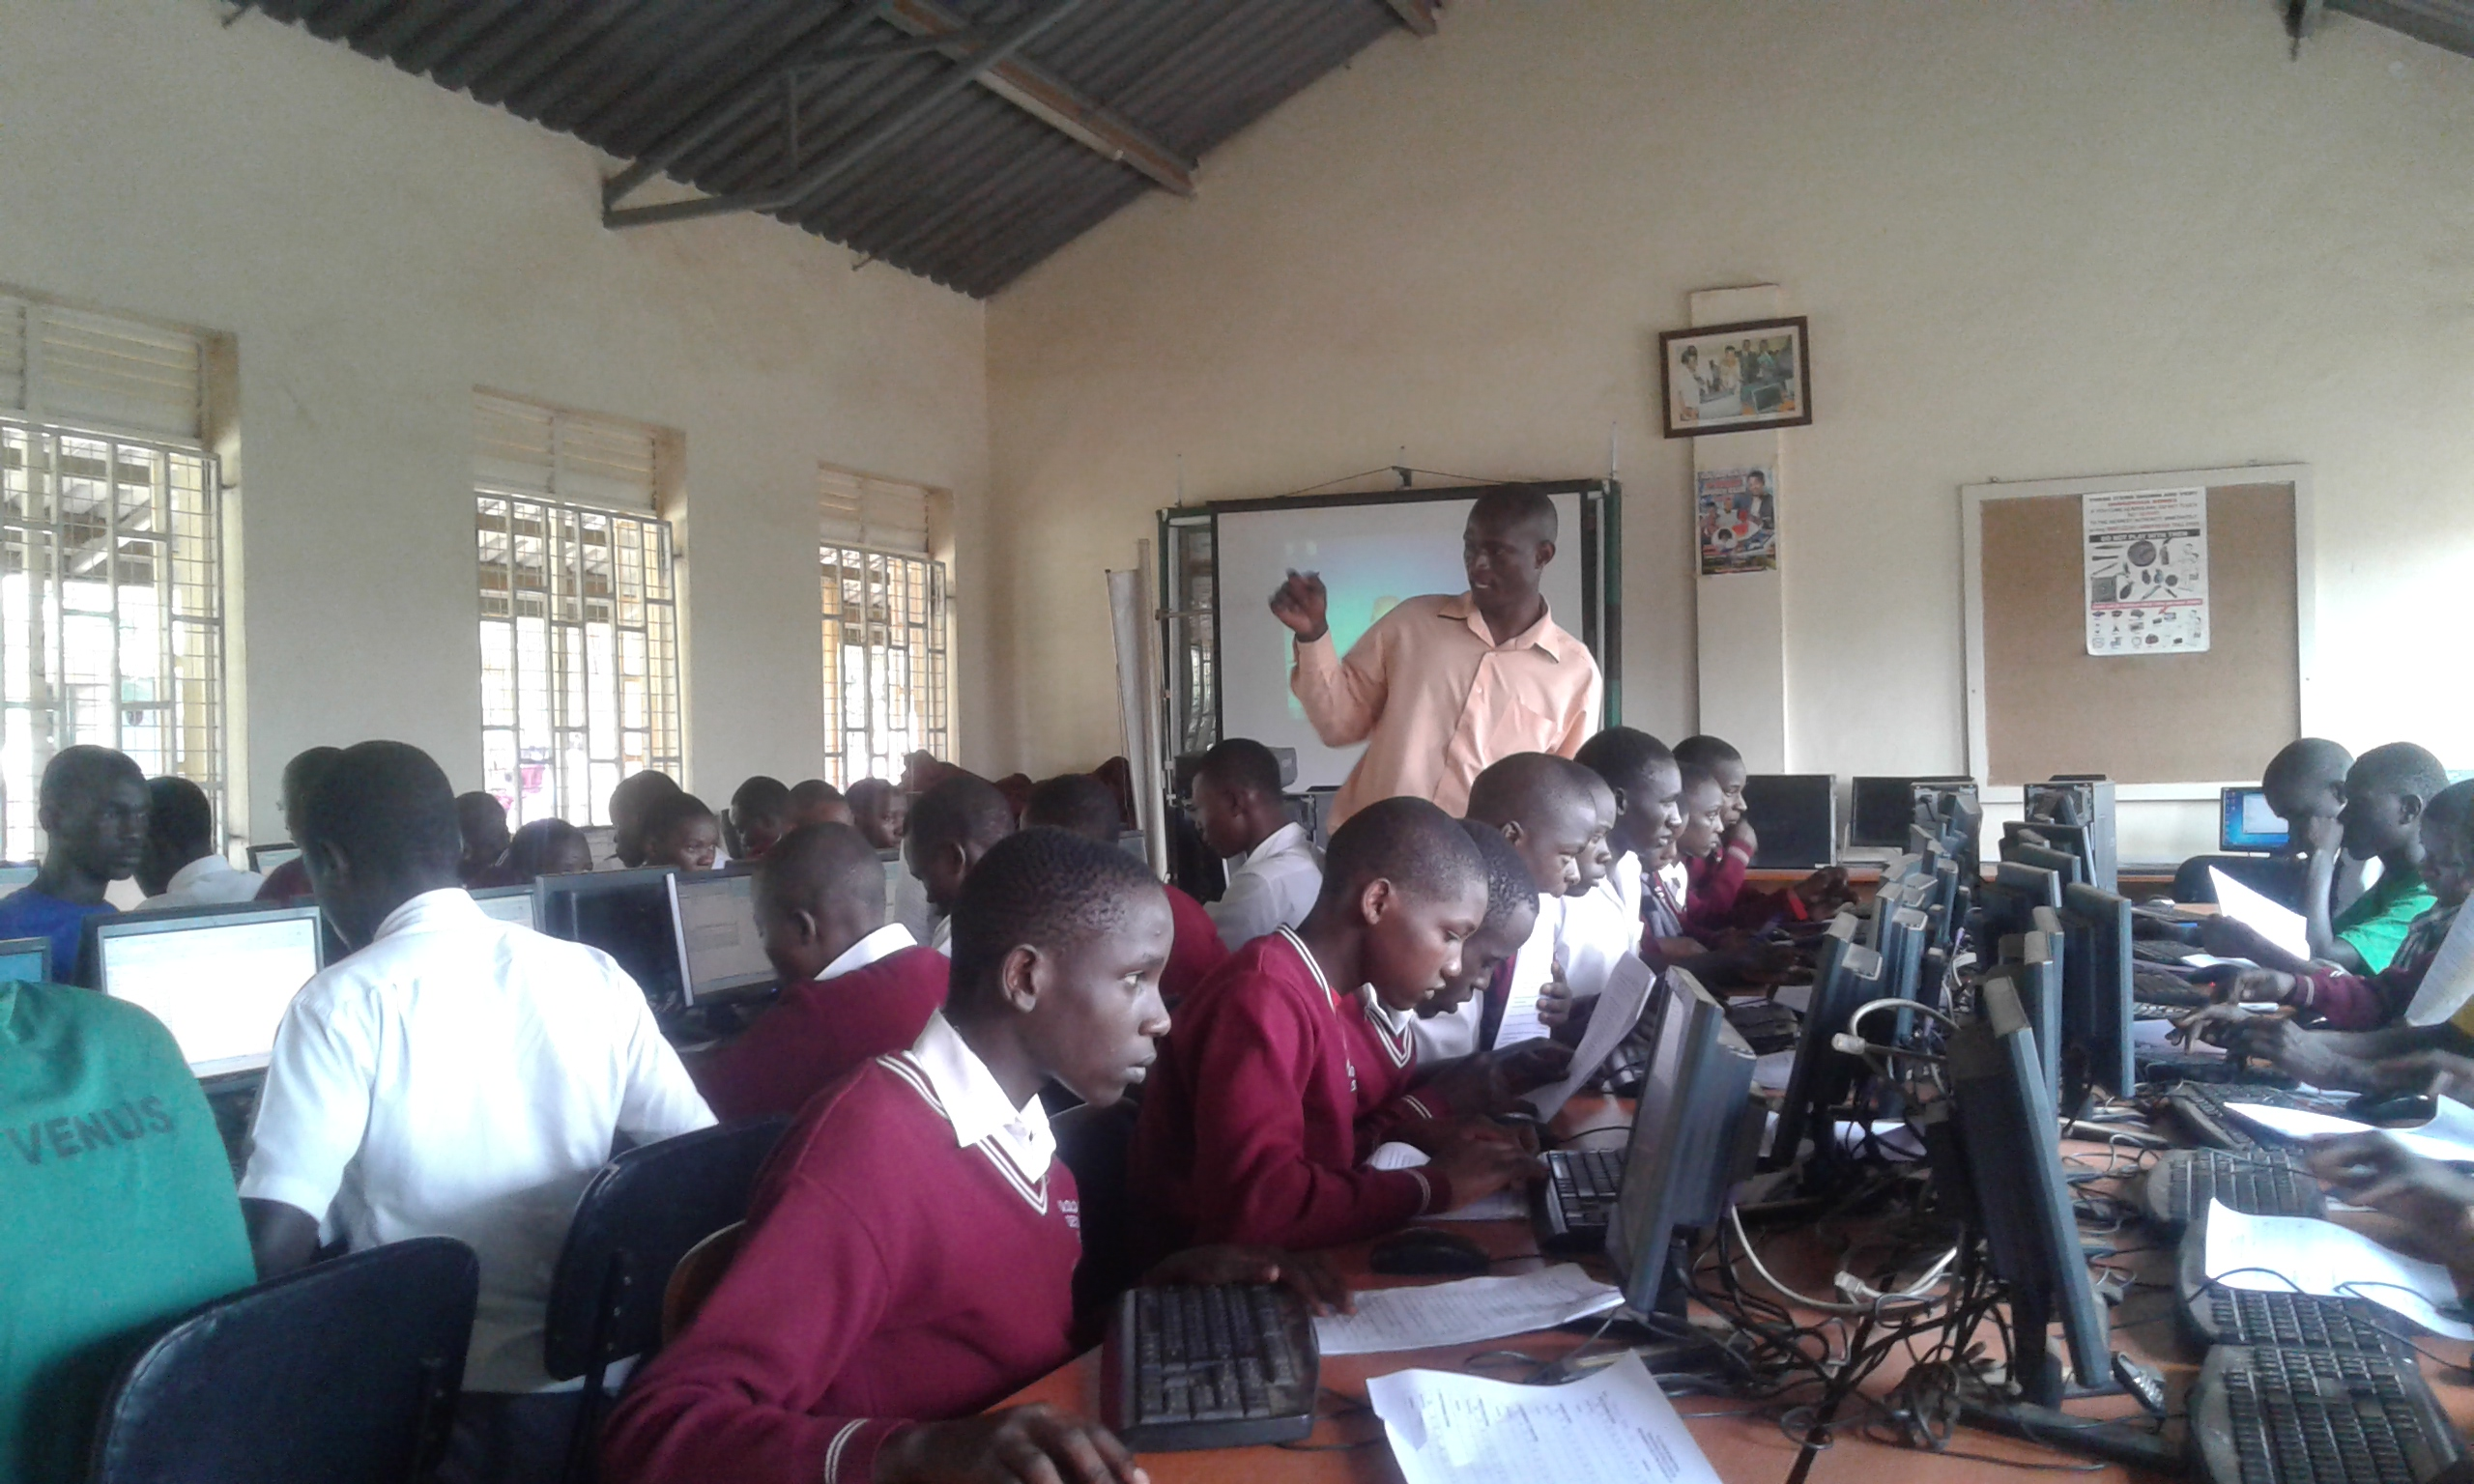 Mr. Mukalele Rogers, a Teacher at Kololo Senior Secondary School, Kampala, guiding Students using computers in a computer Lab. Digital Education is on the rise in Uganda